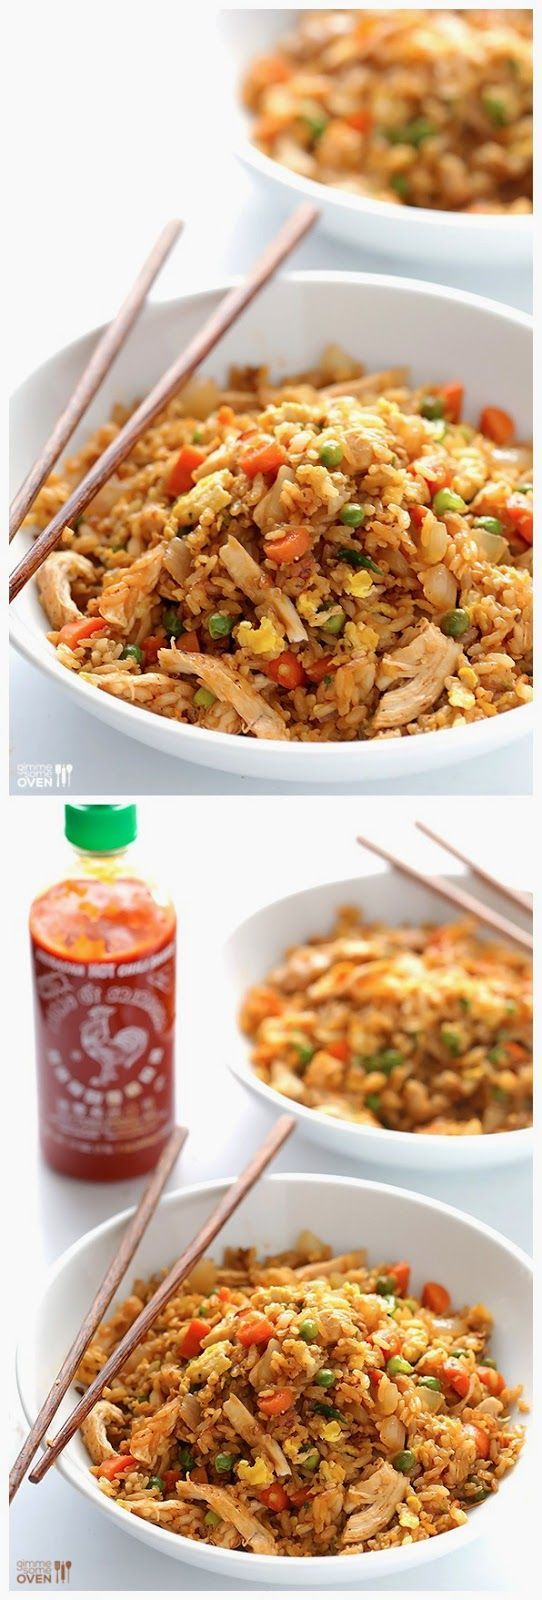 Easy and Quick Recipes: Spicy Chicken Fried Rice